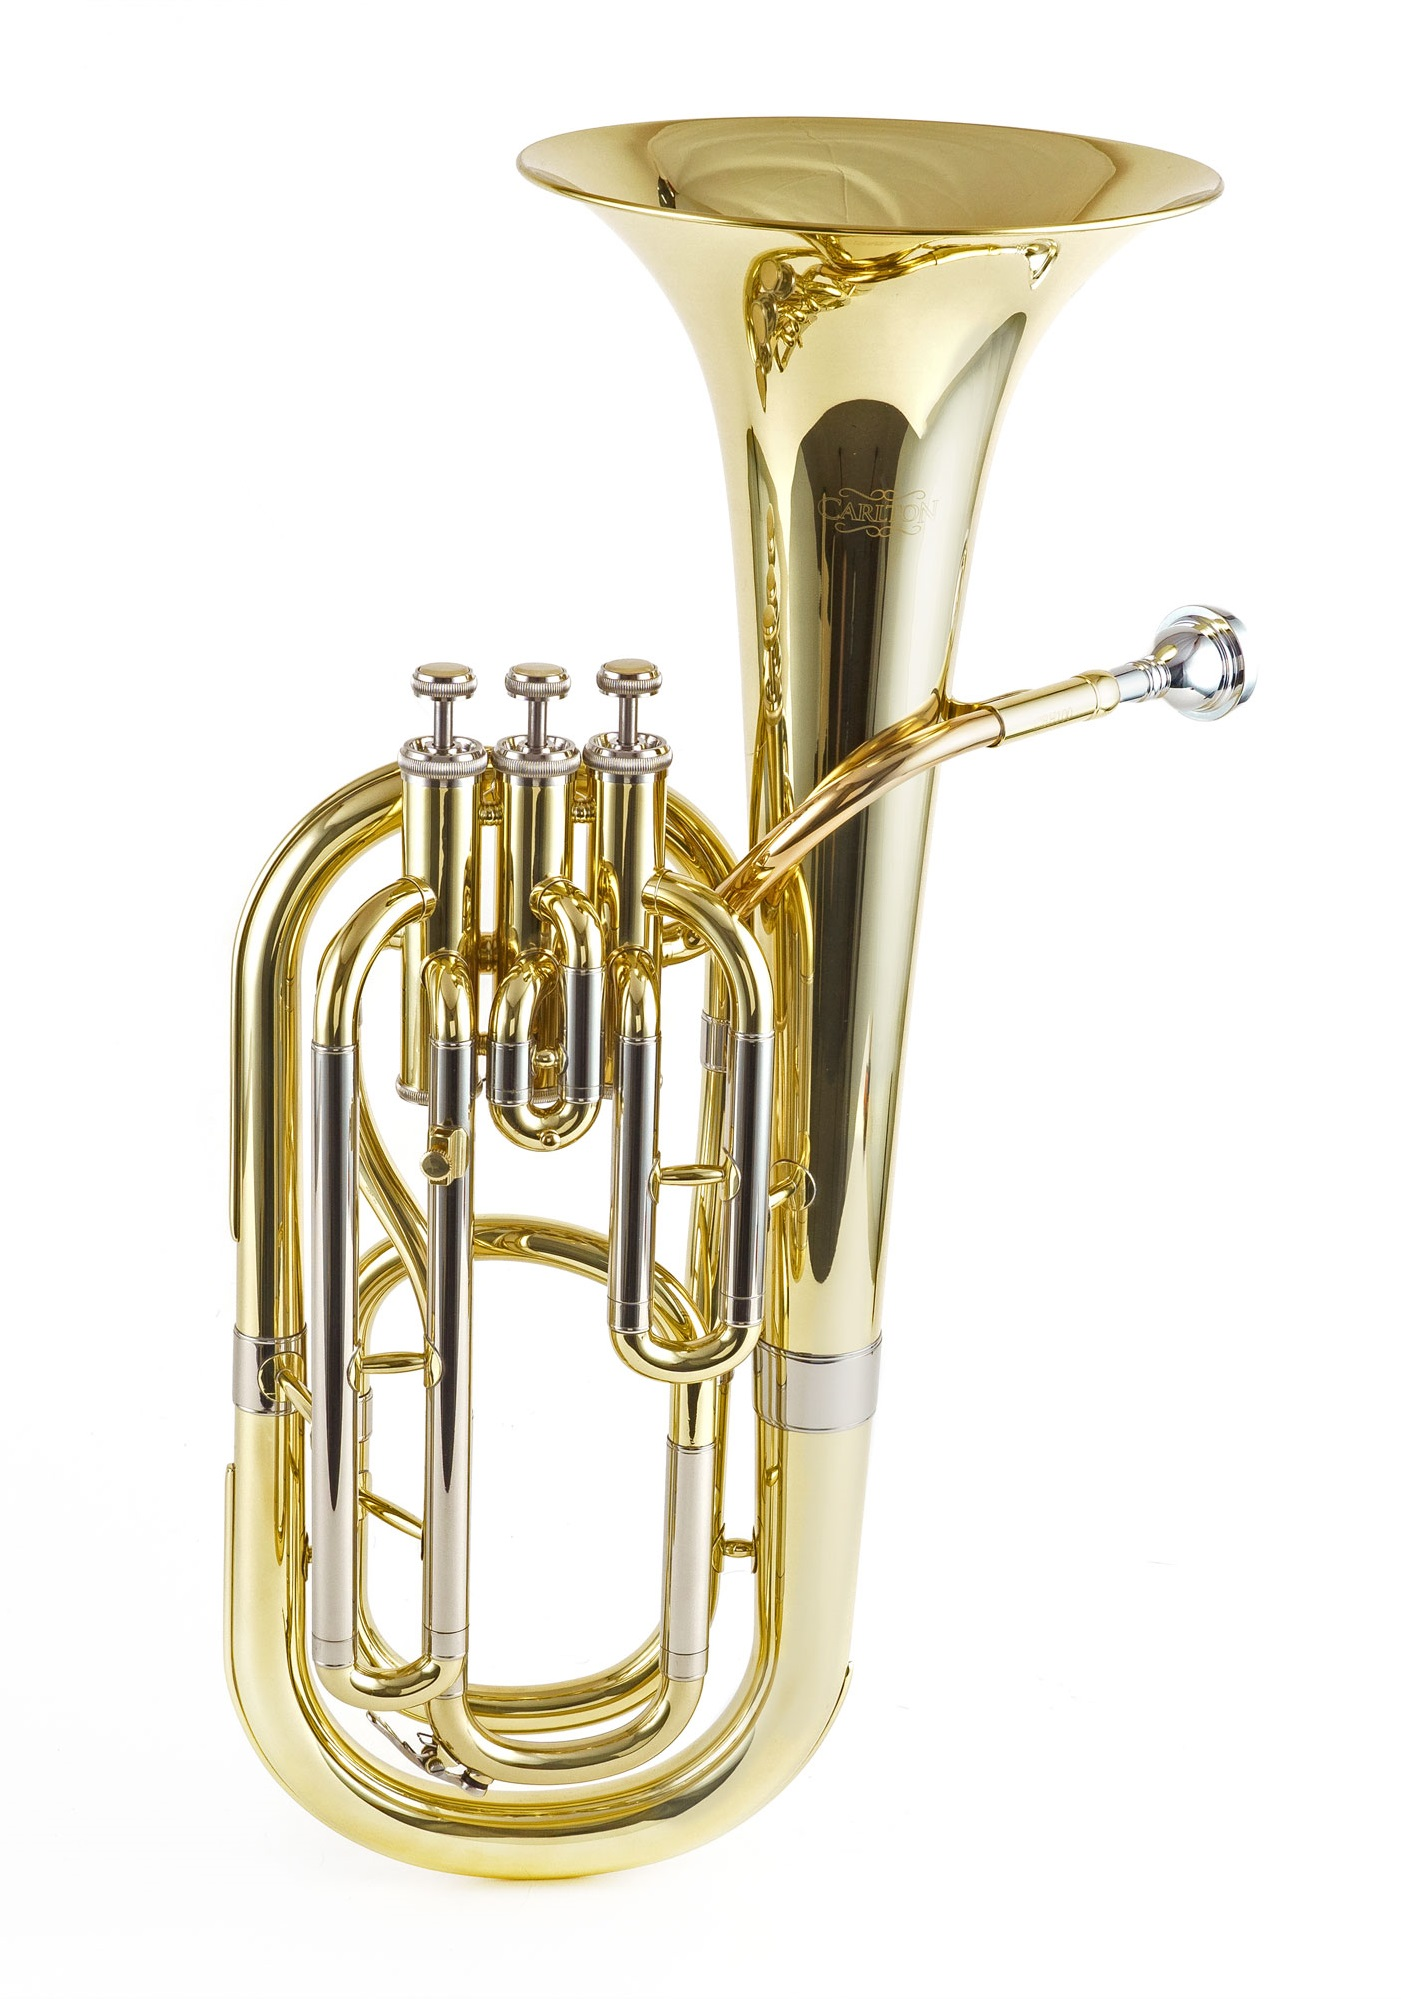 3 Valve Baritone Horn - Lacquered Finish